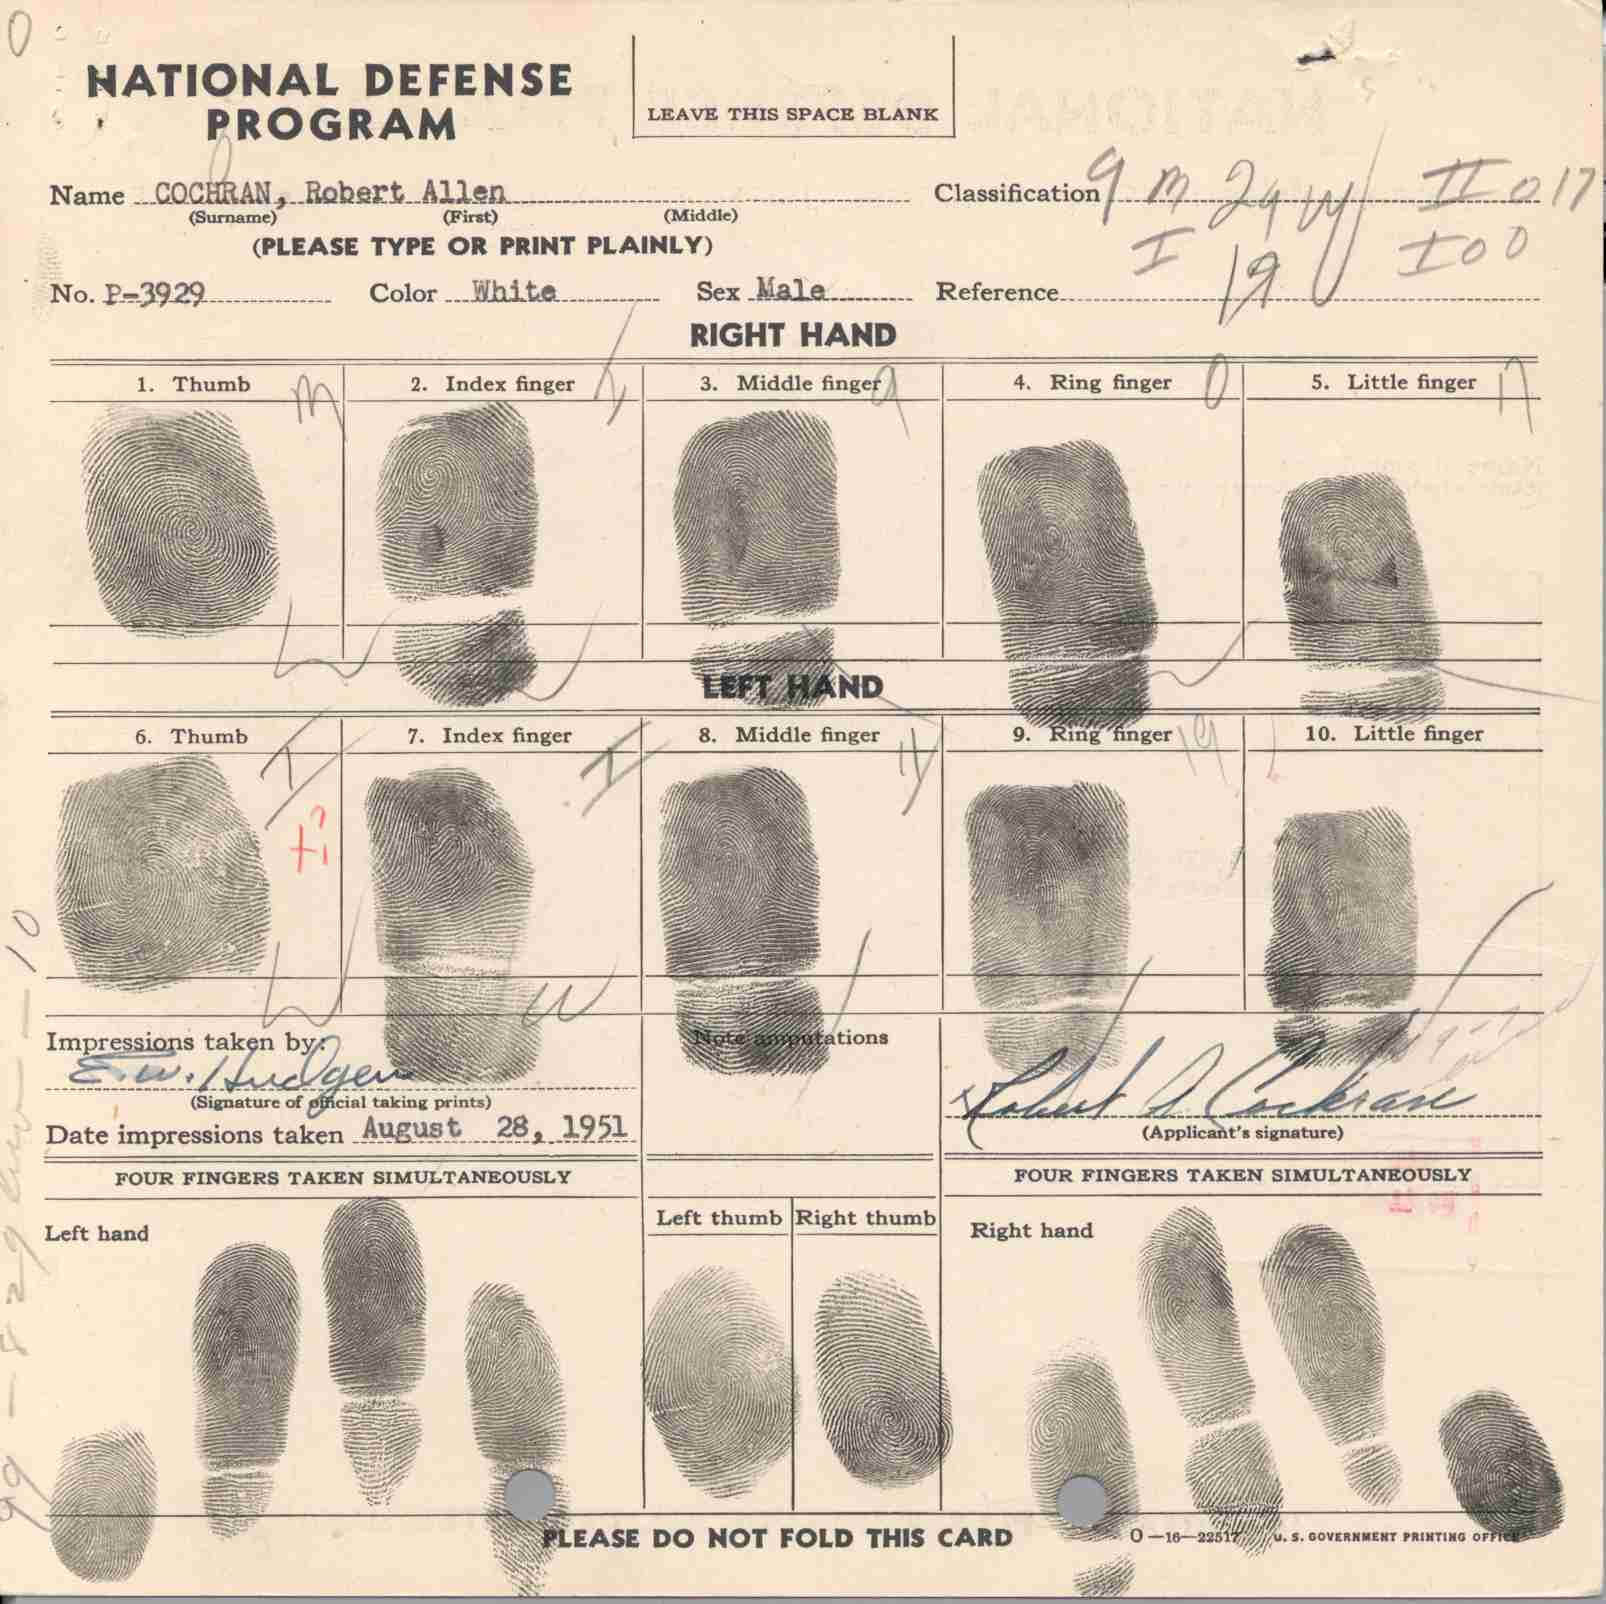 robert allen cochran fingerprint card.jpg